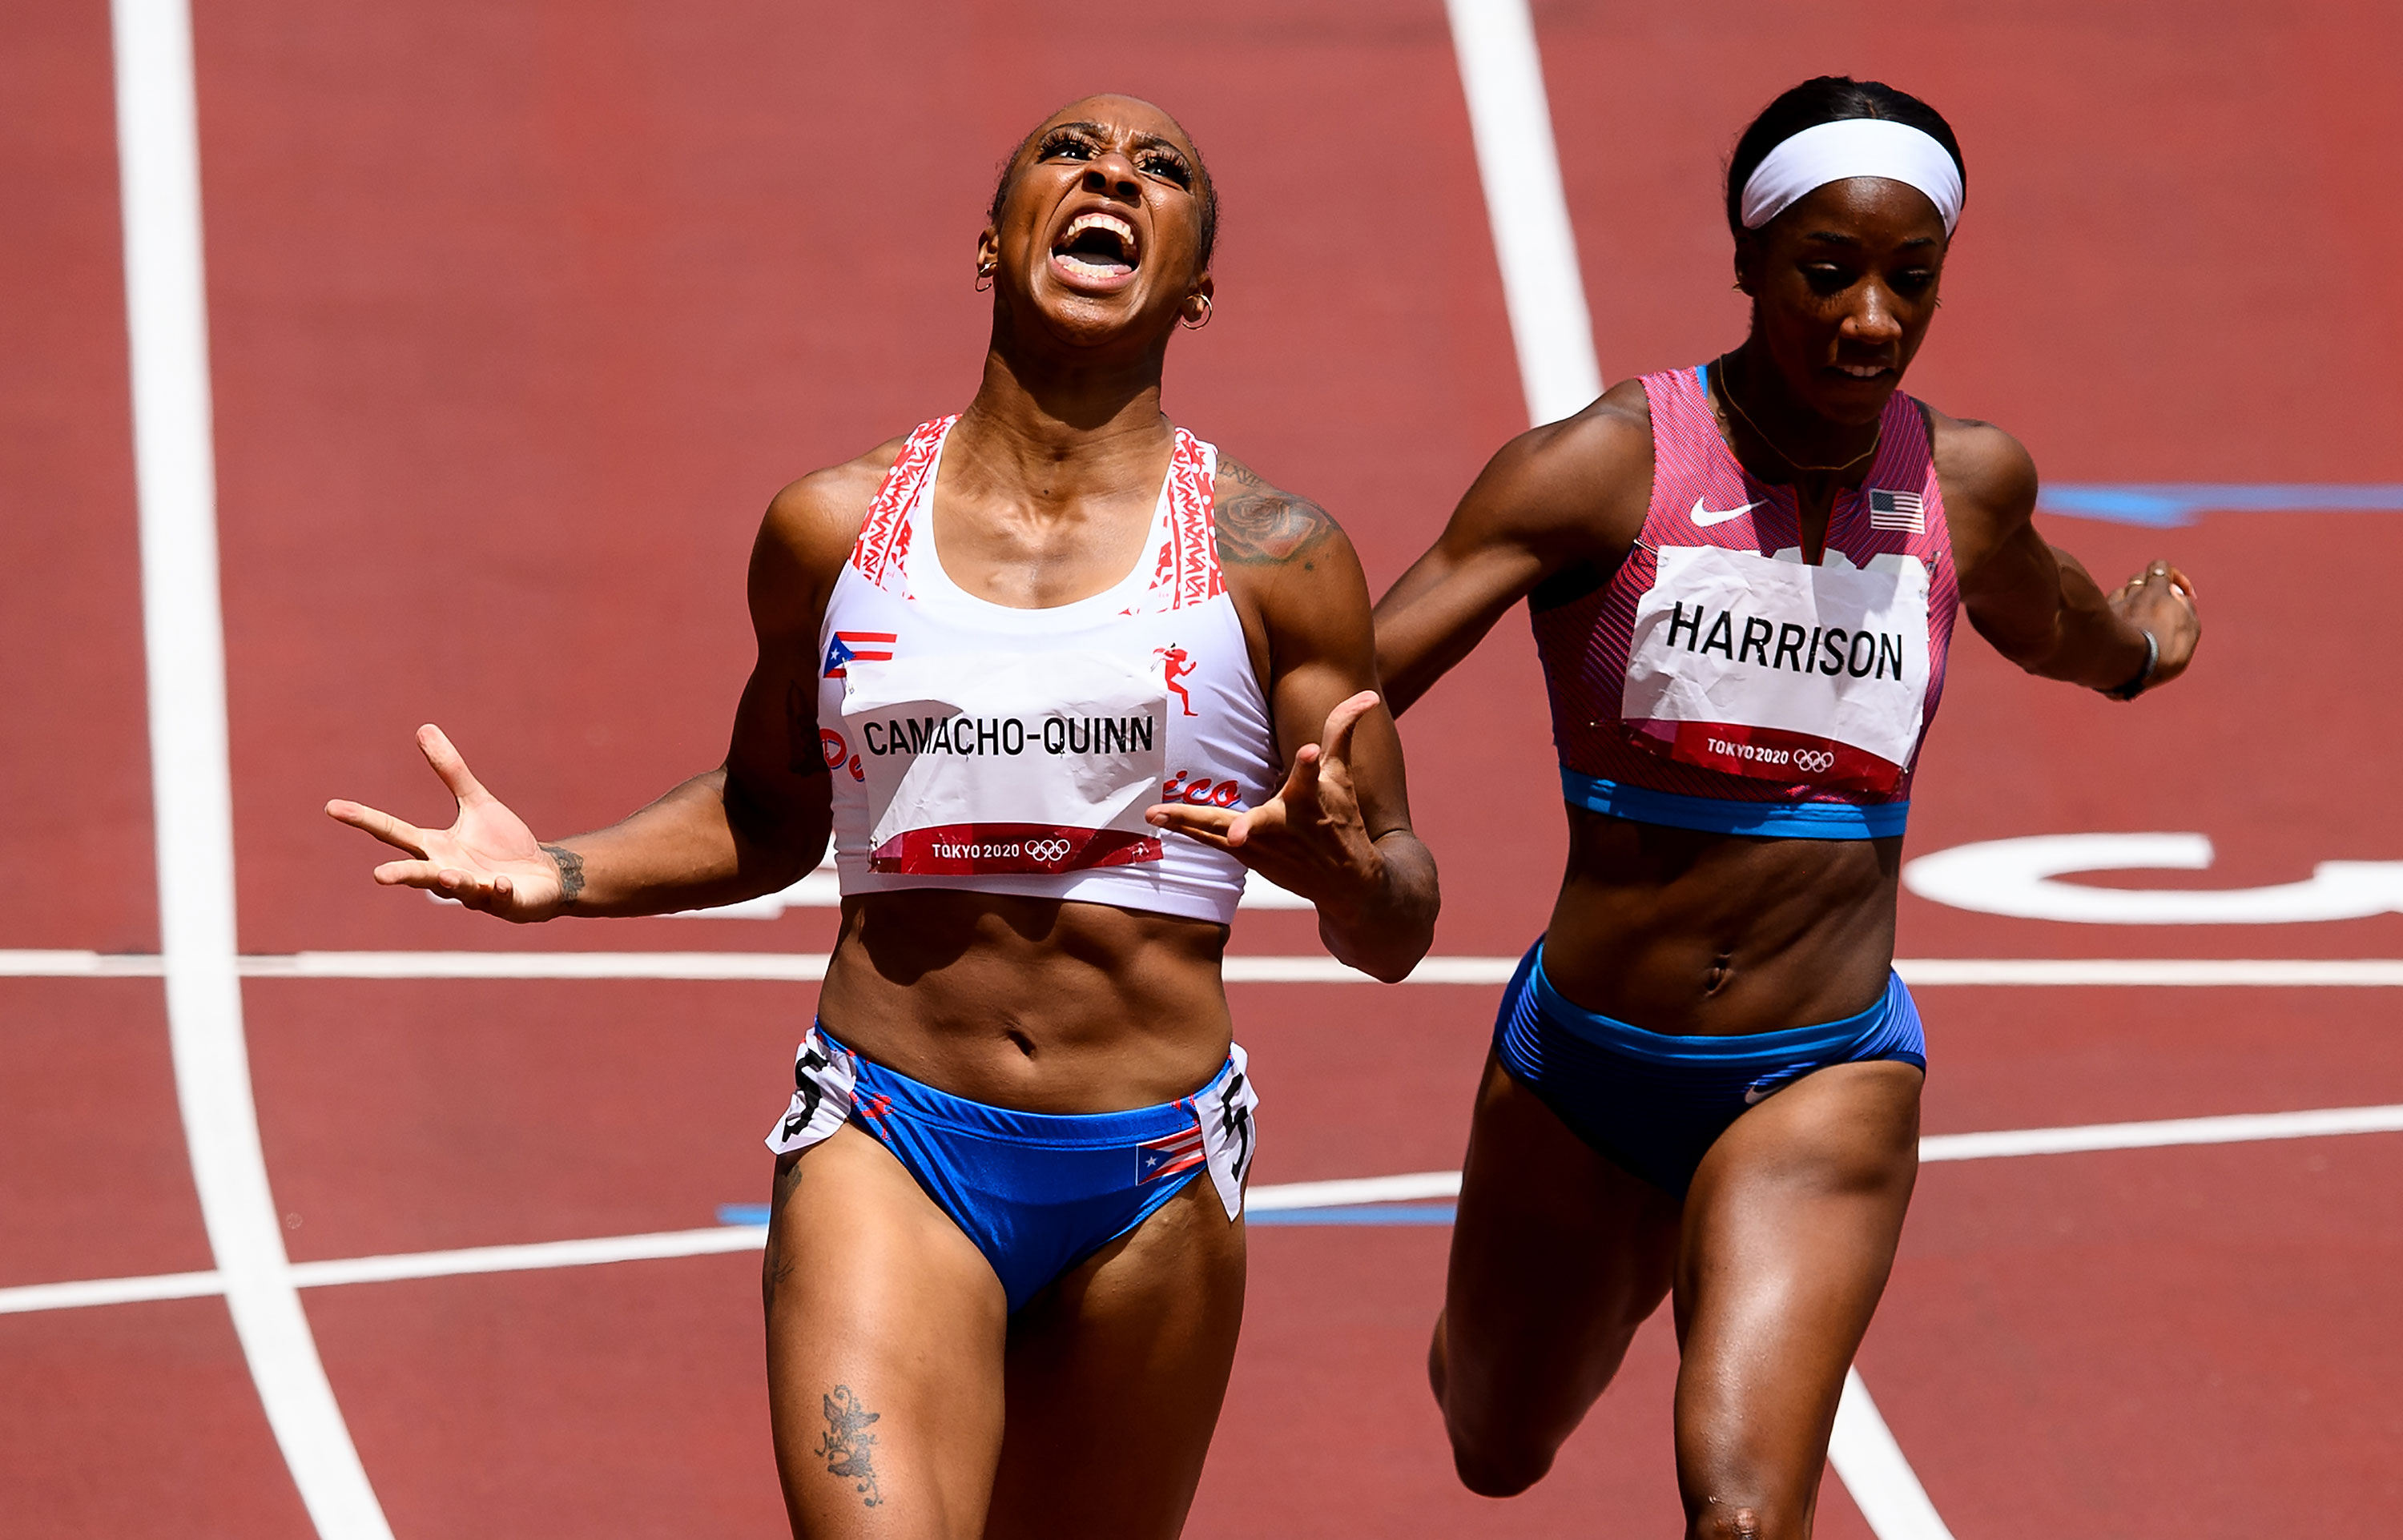 Jasmine Camacho-Quinn of Puerto Rico celebrates as she finishes first in the 100-meter hurdles final on August 2.